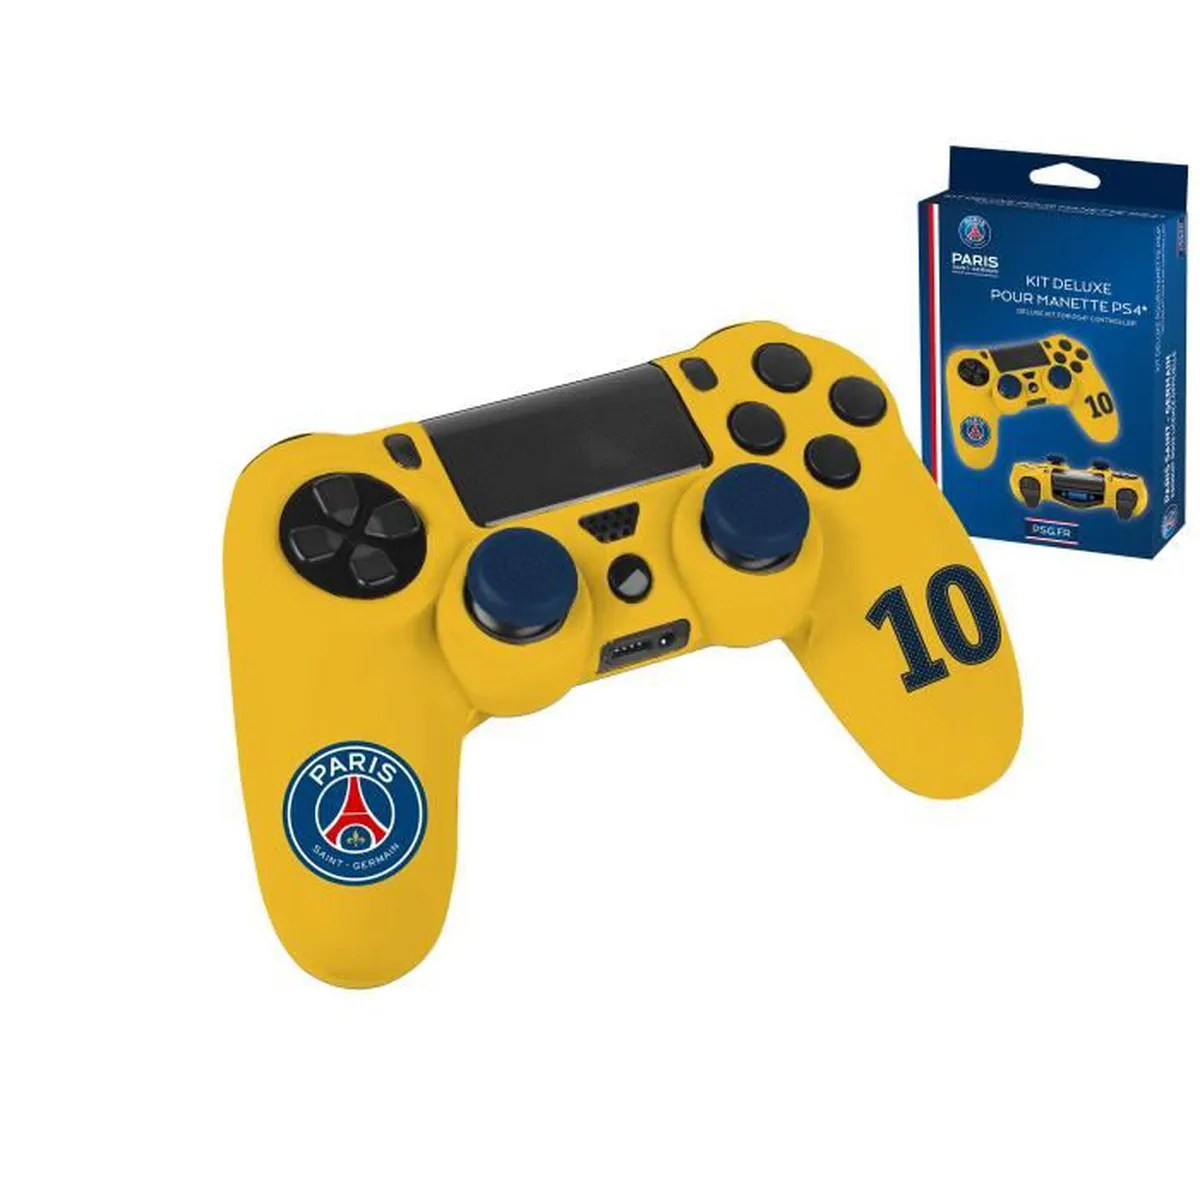 Kit Deluxe Pour Manette PS4 Housse Caps Silicone